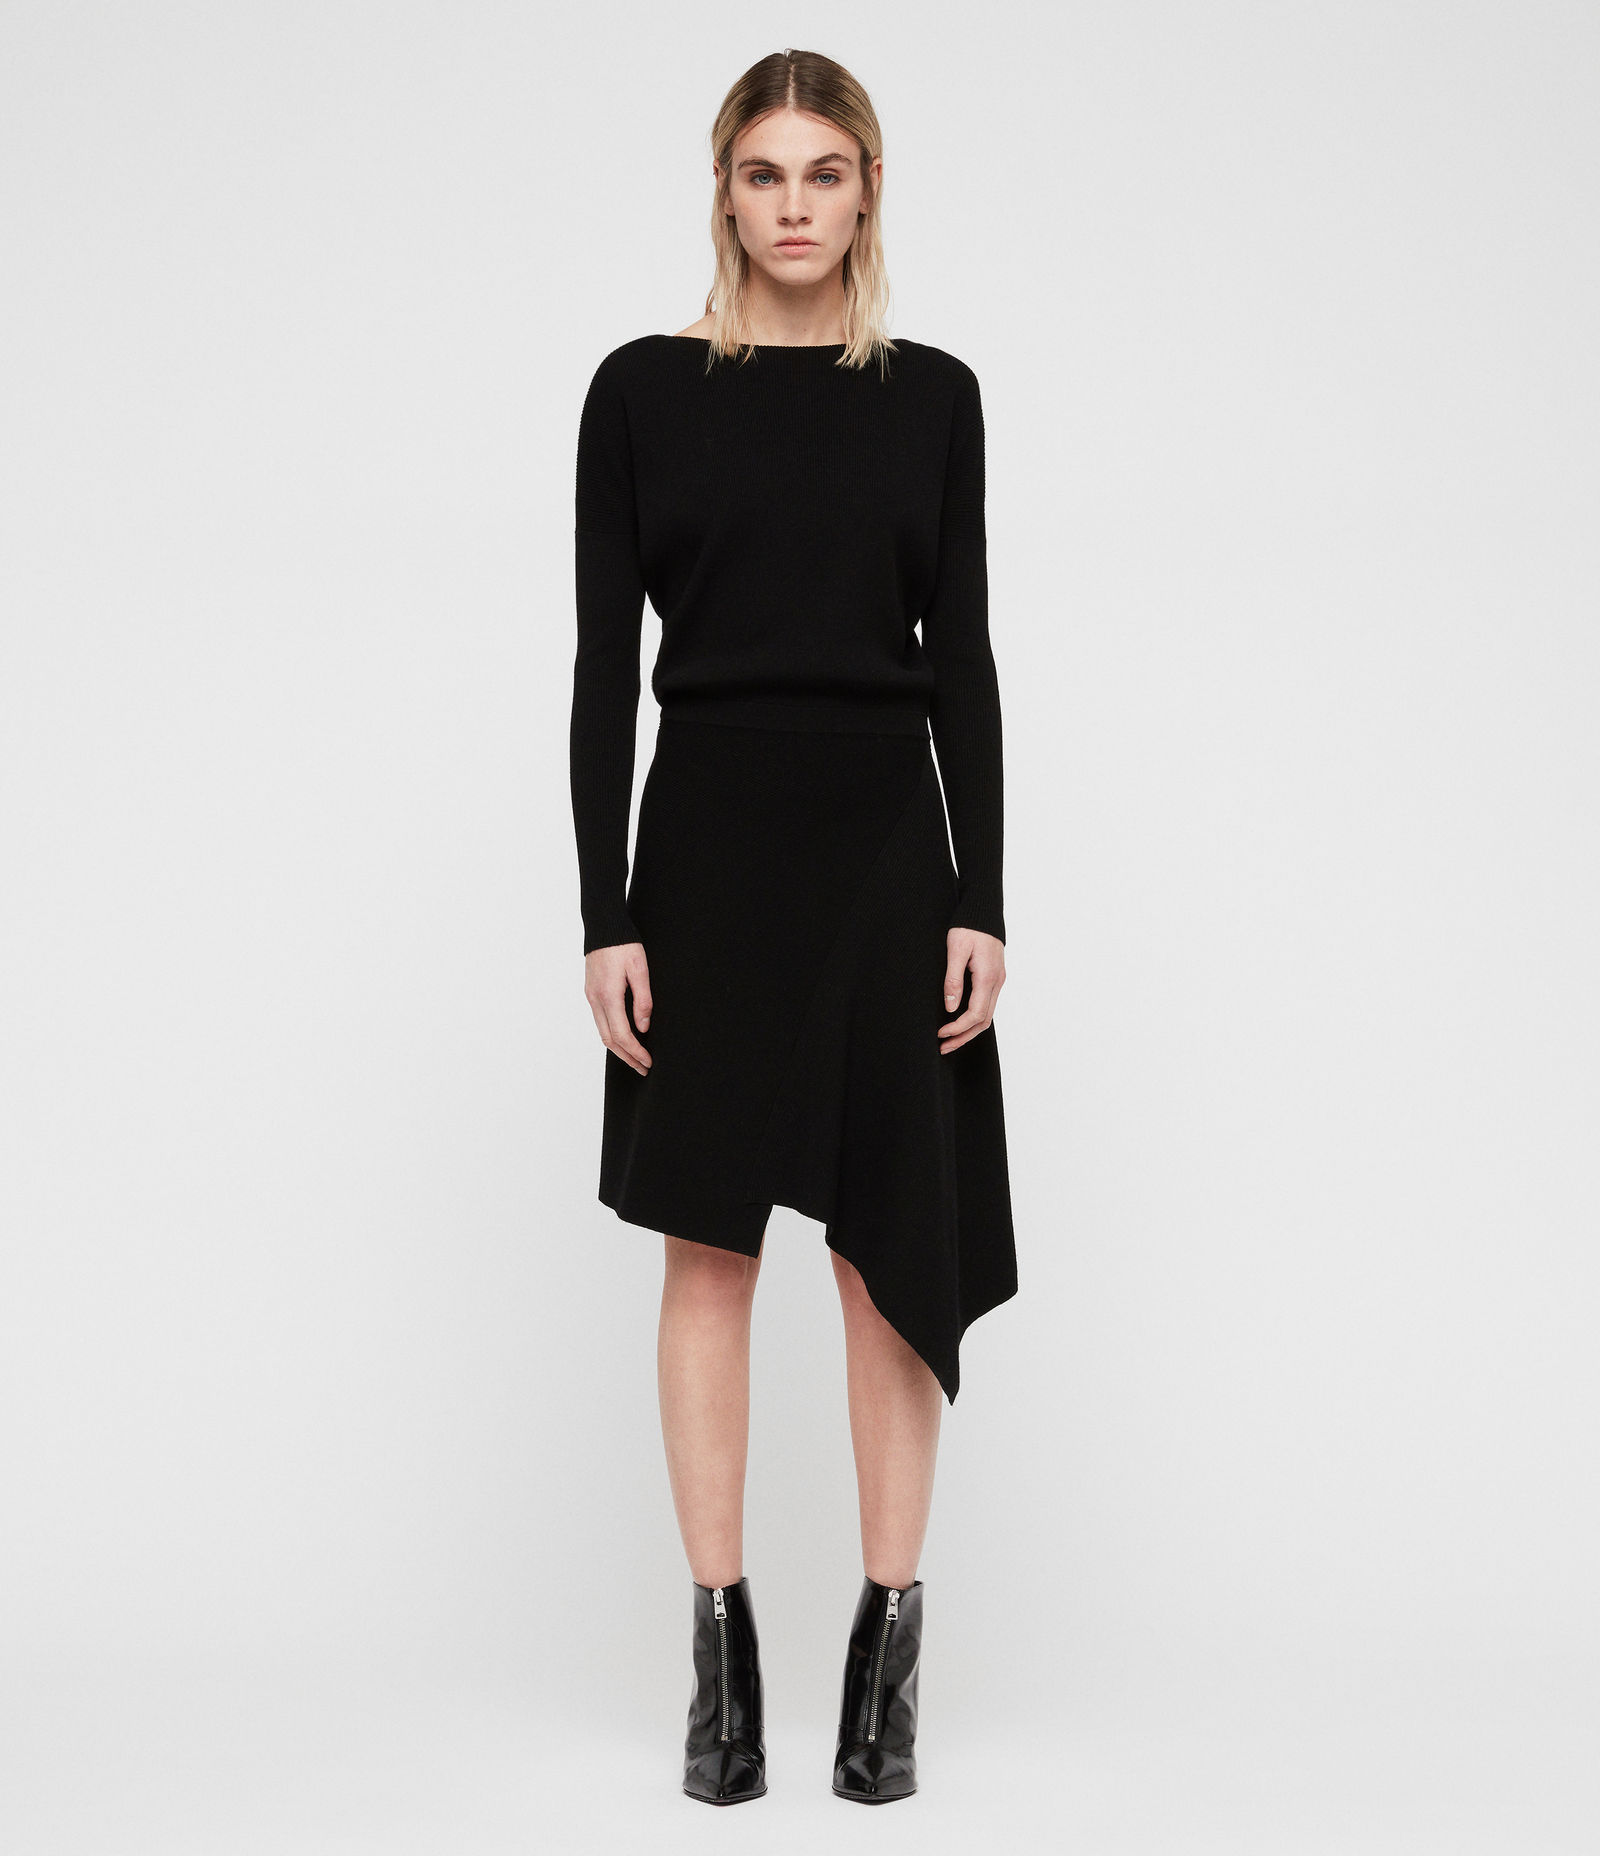 All Saints SUKE DRESS. Available in two colors. All Saints. Was: $260. Now: $145.